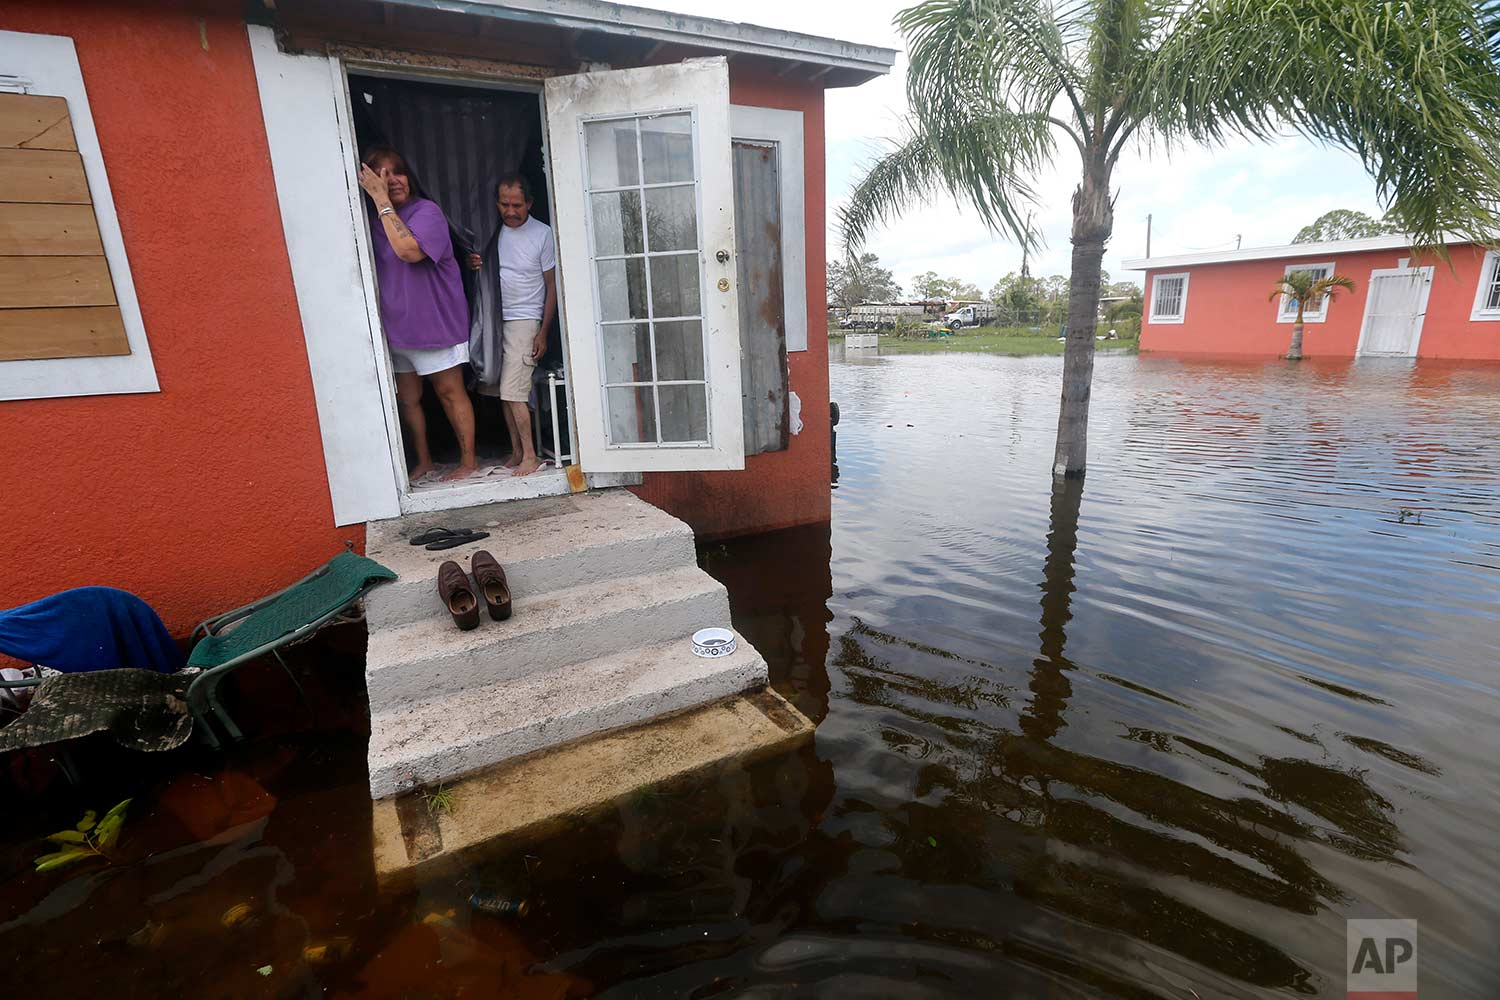 In this Sept. 11, 2017 file photo, Quintana and Liz Perez look at the flooding outside their home in the aftermath of Hurricane Irma, in Immokalee, Fla, one of the poorest towns in the state. Home of many day laborers and migrant workers, Immokalee sustained heavy damage from Irma that will take months to overcome. (AP Photo/Gerald Herbert)